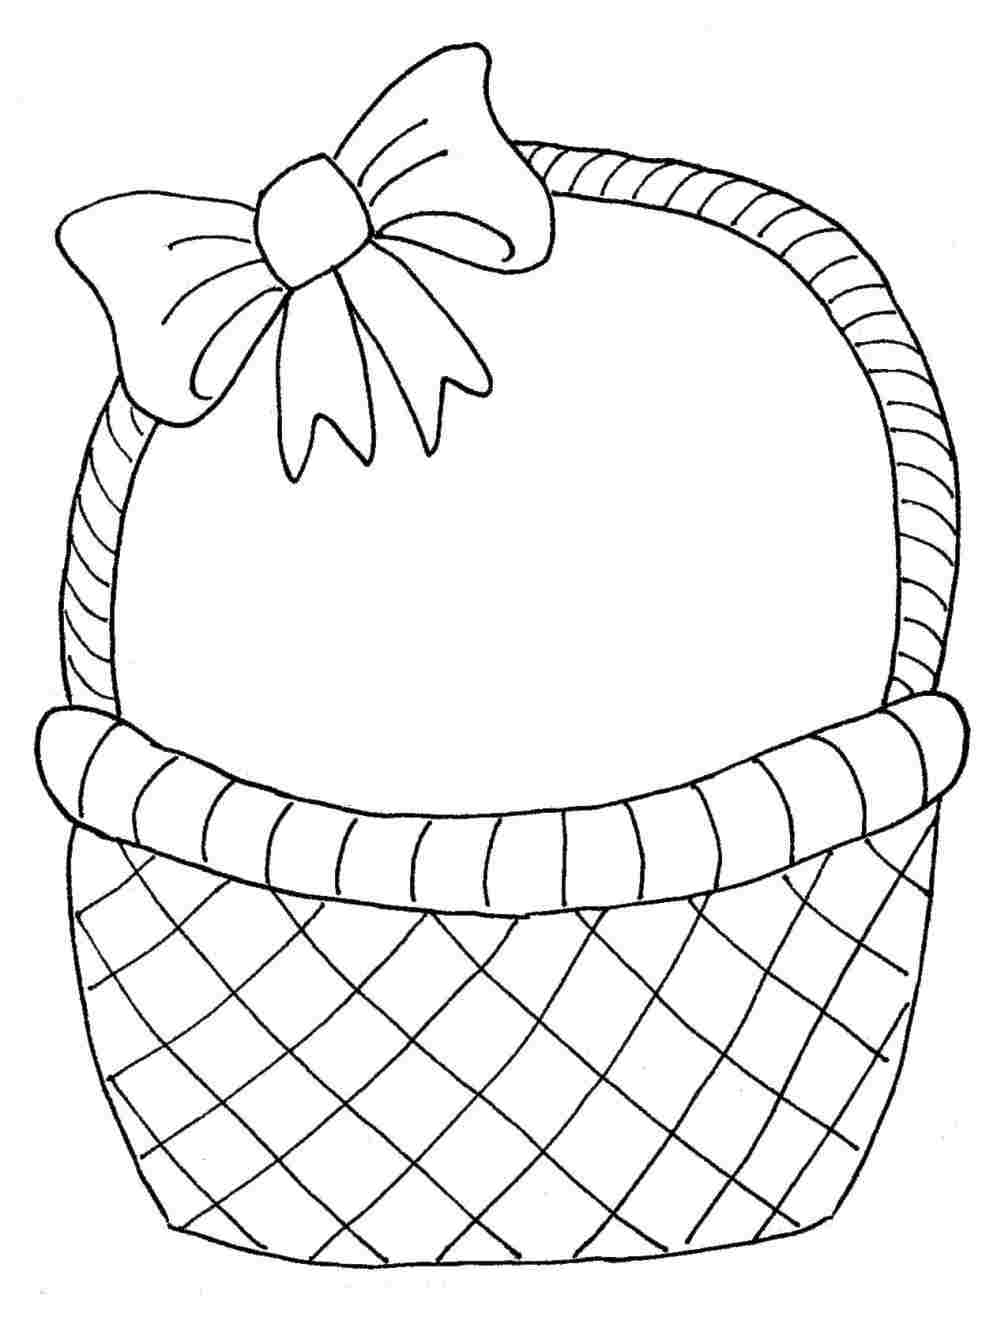 how to draw a bowl of fruit step by step fruits basket drawing at getdrawings free download to fruit of bowl step by how a draw step